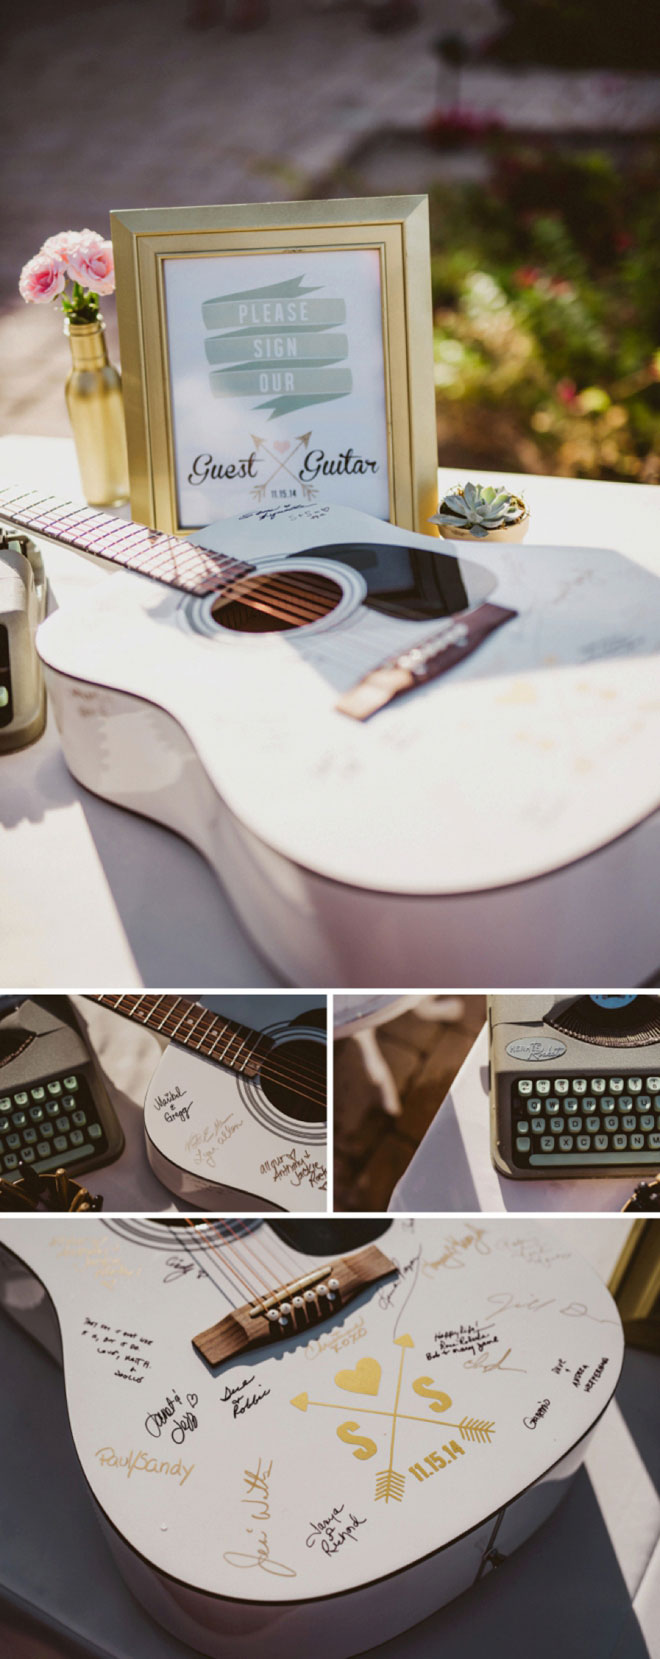 Guitar Guest Book, OMG right!?!